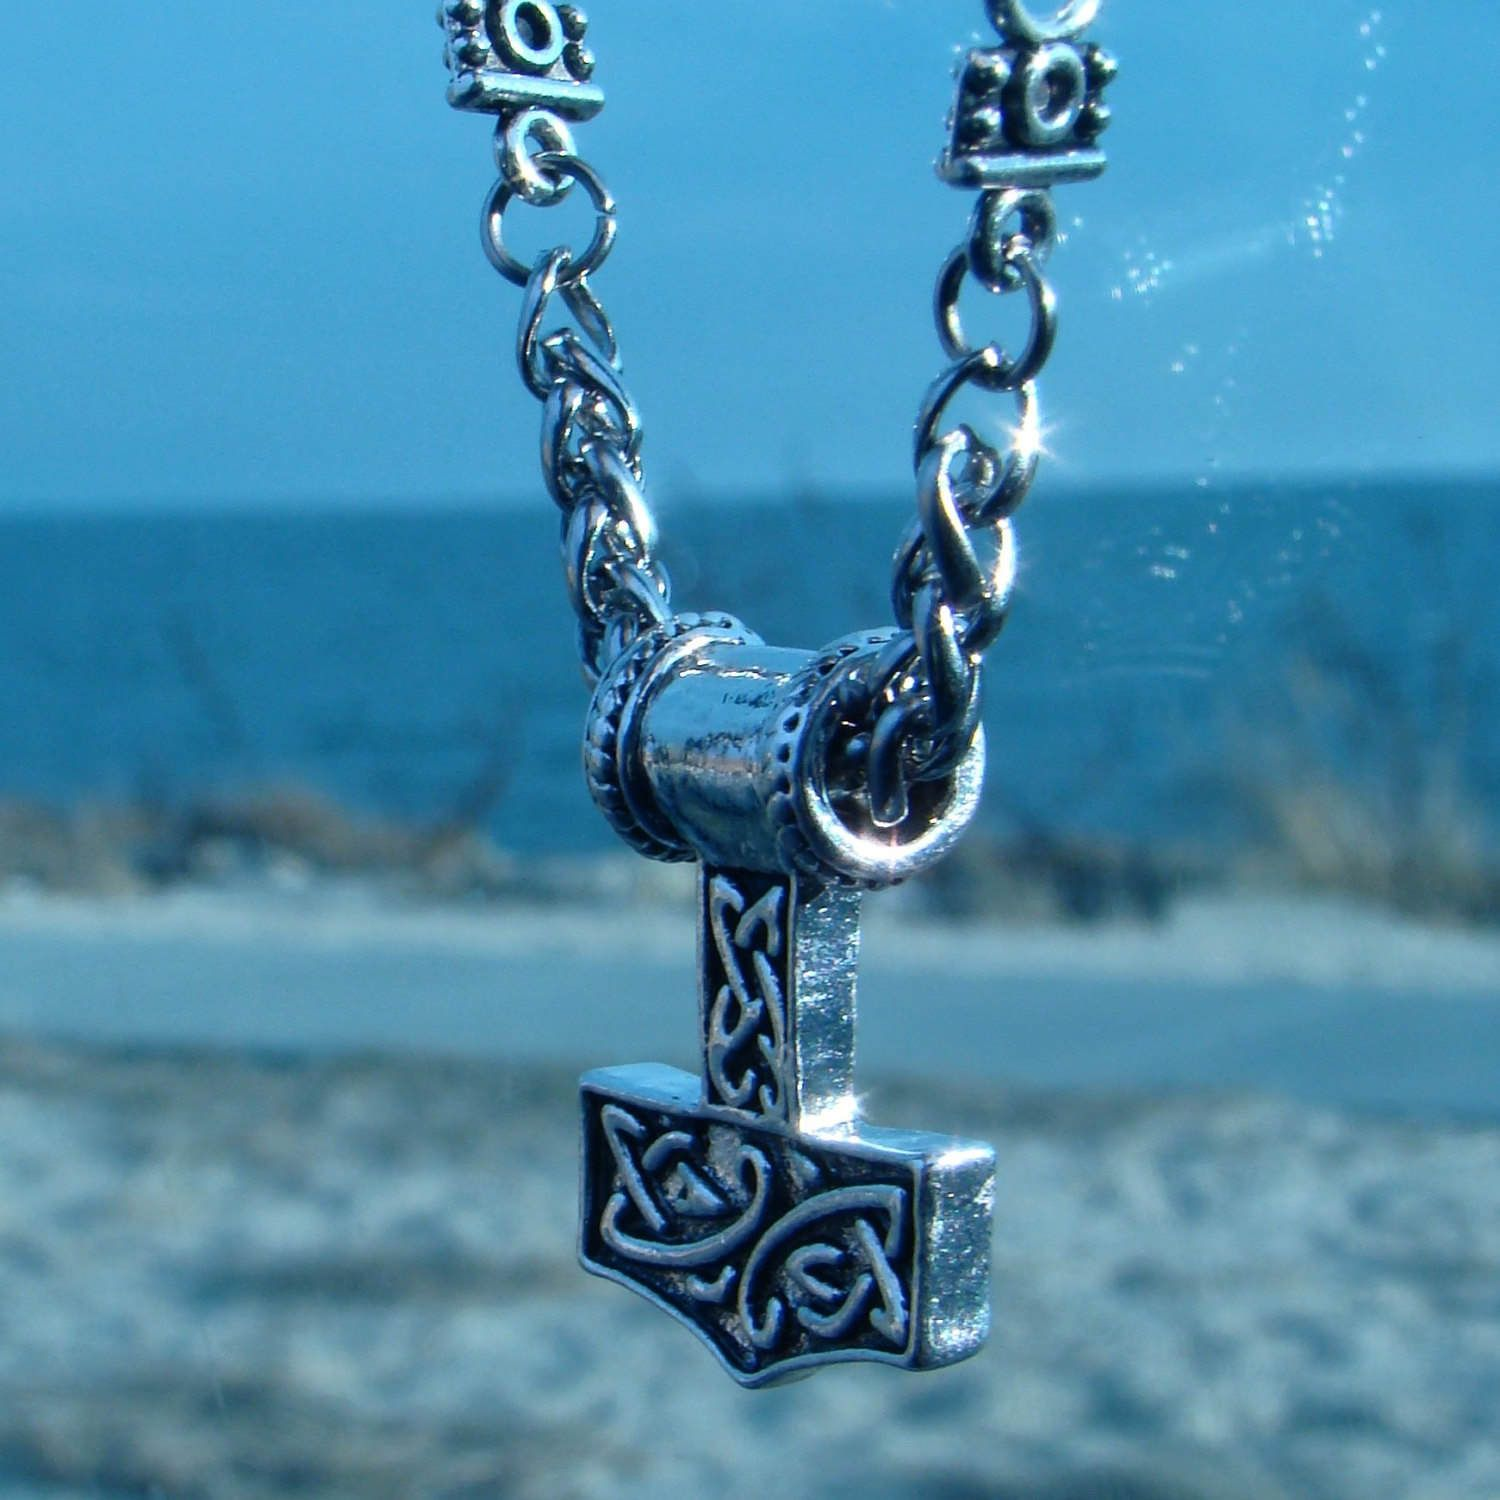 lisa bail link knot classic a celtic and pin you as pendant necklace barth warrior the for